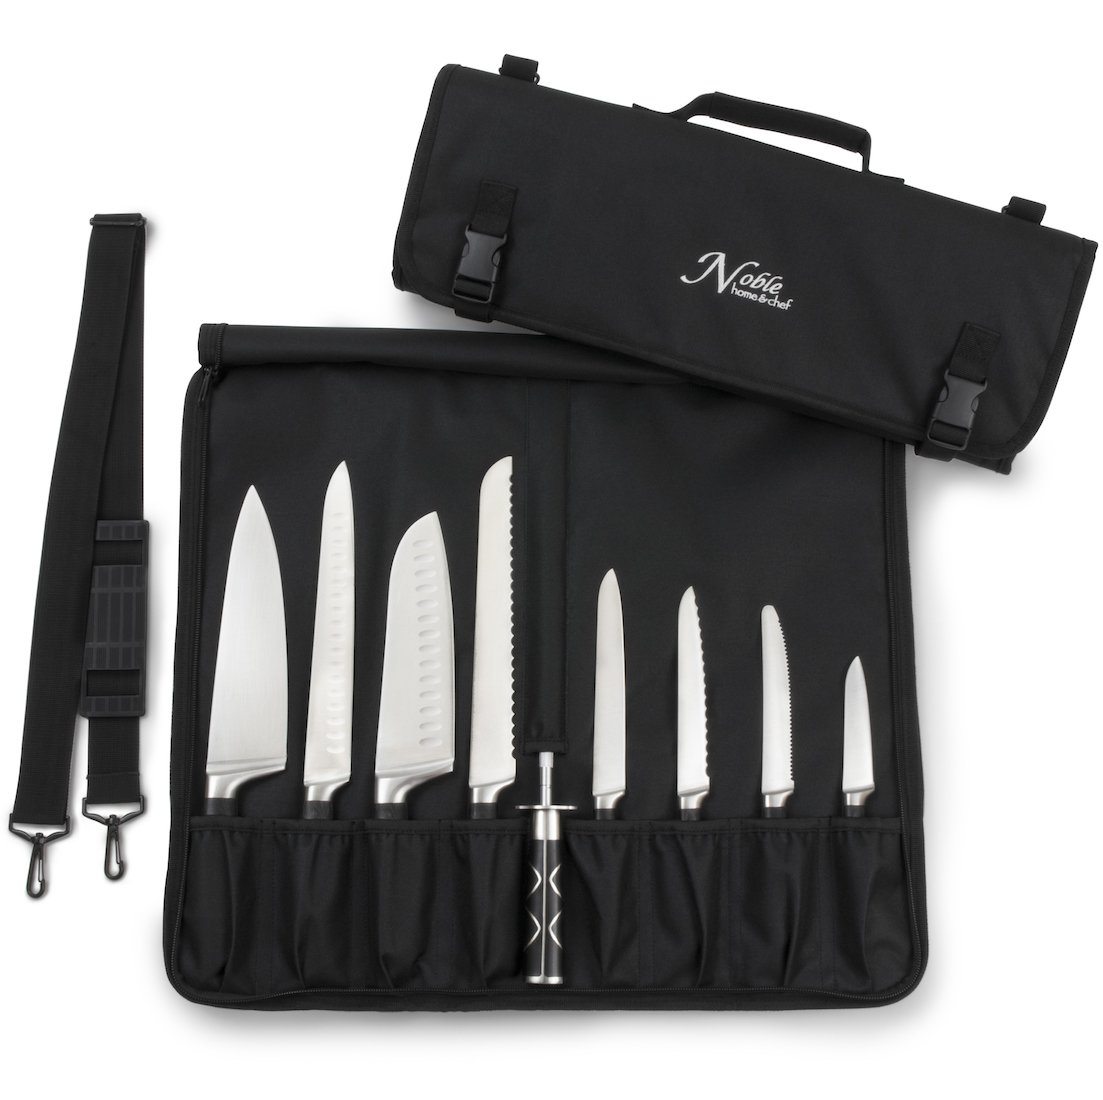 Chef Knife Bag (8+ Slots) is Padded and Holds 8 Knives PLUS Your Meat Cleaver, Knife Steel, 4 Utensils, AND a Zipped Pouch for Tools! Durable Knife Carrier also Includes a Name Card Holder. (Bag Only) by Noble Home & Chef